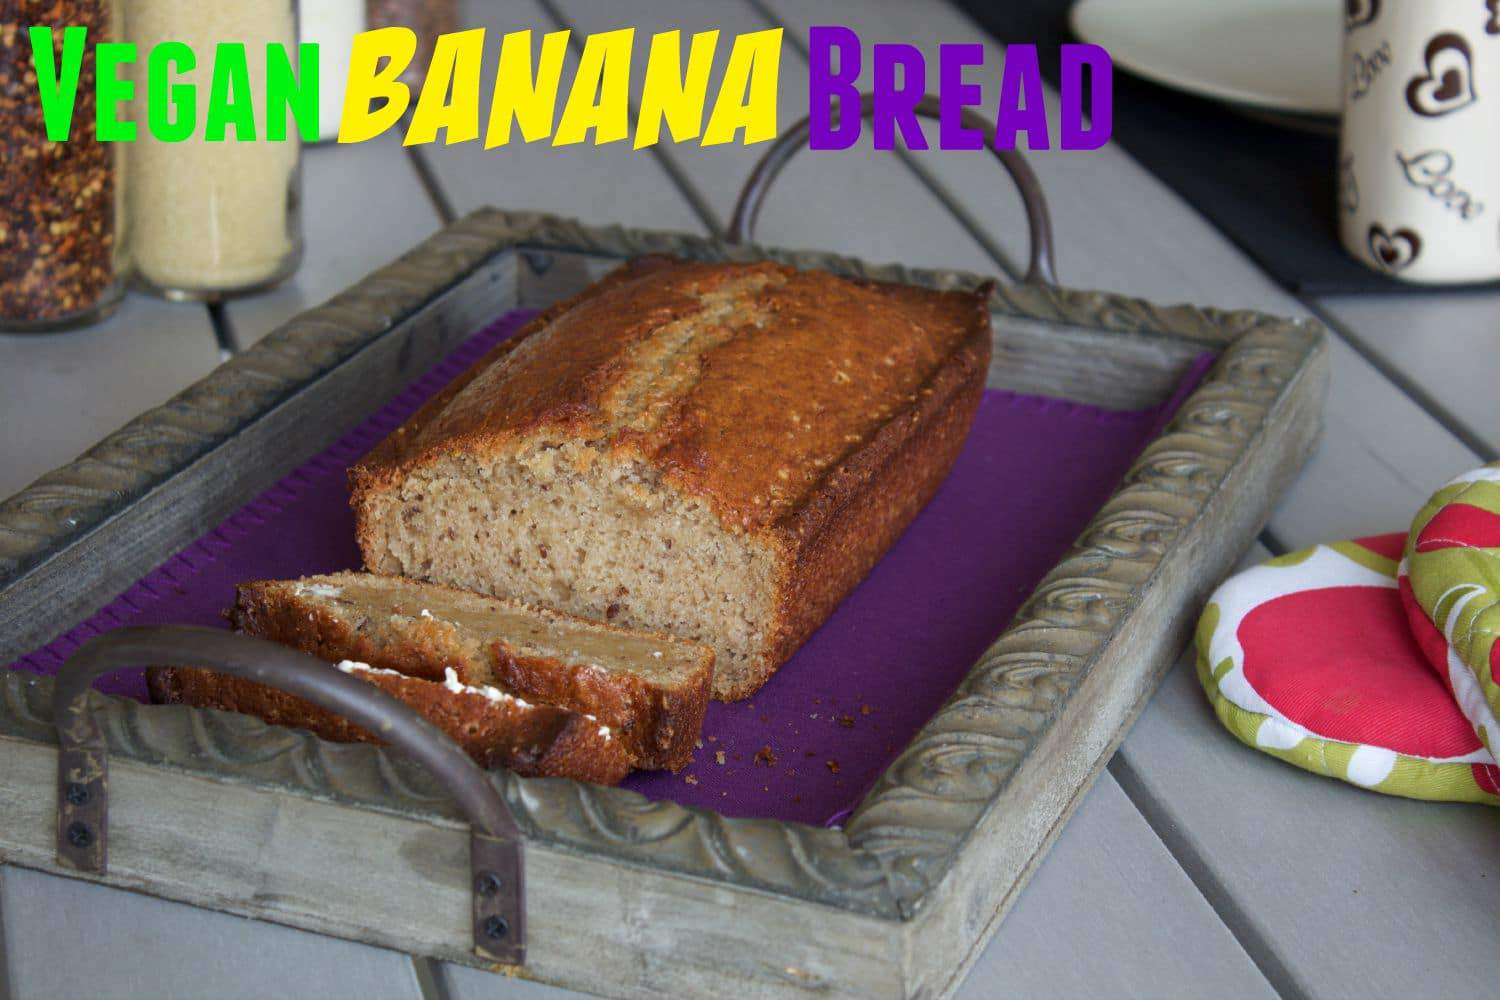 Simple Vegan Banana Bread - crispy on the outside, moist on the inside and delicious served warm from the oven and spread with vegan butter! #vegan #dairy-free #lovingitvegan